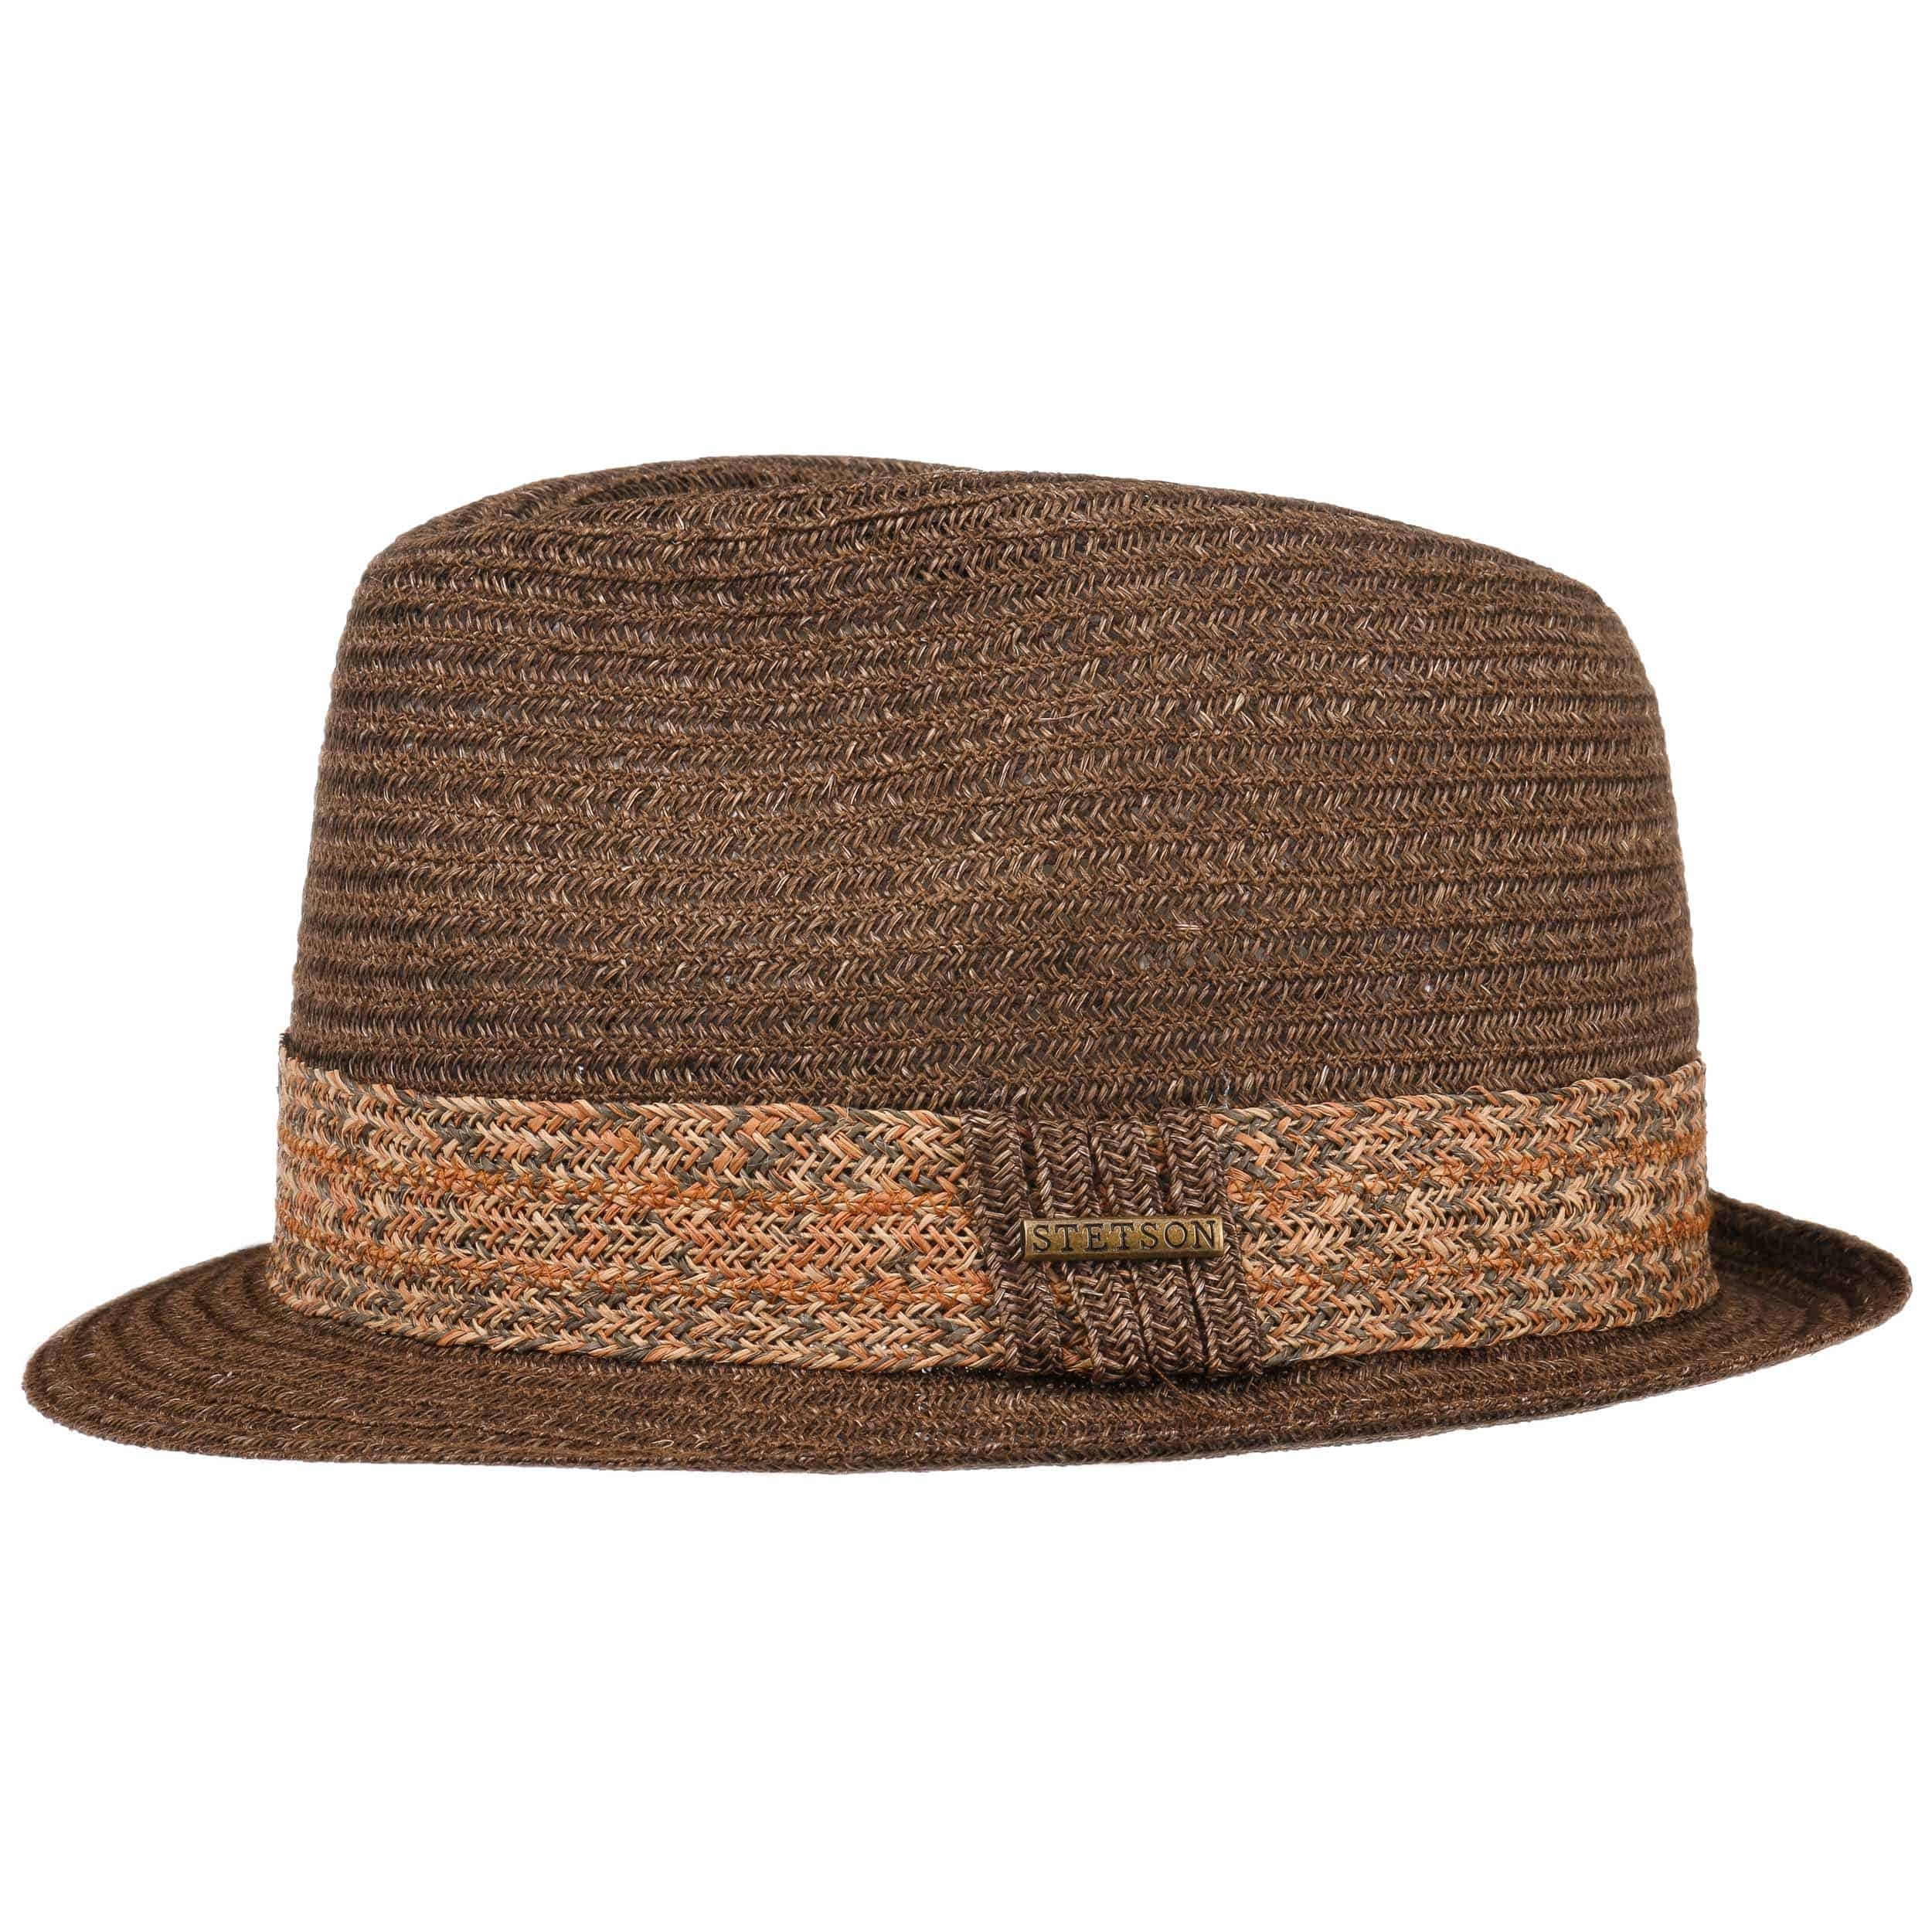 Abacá Trilby Straw Hat by Stetson, EUR 79,00 --> Hats ...